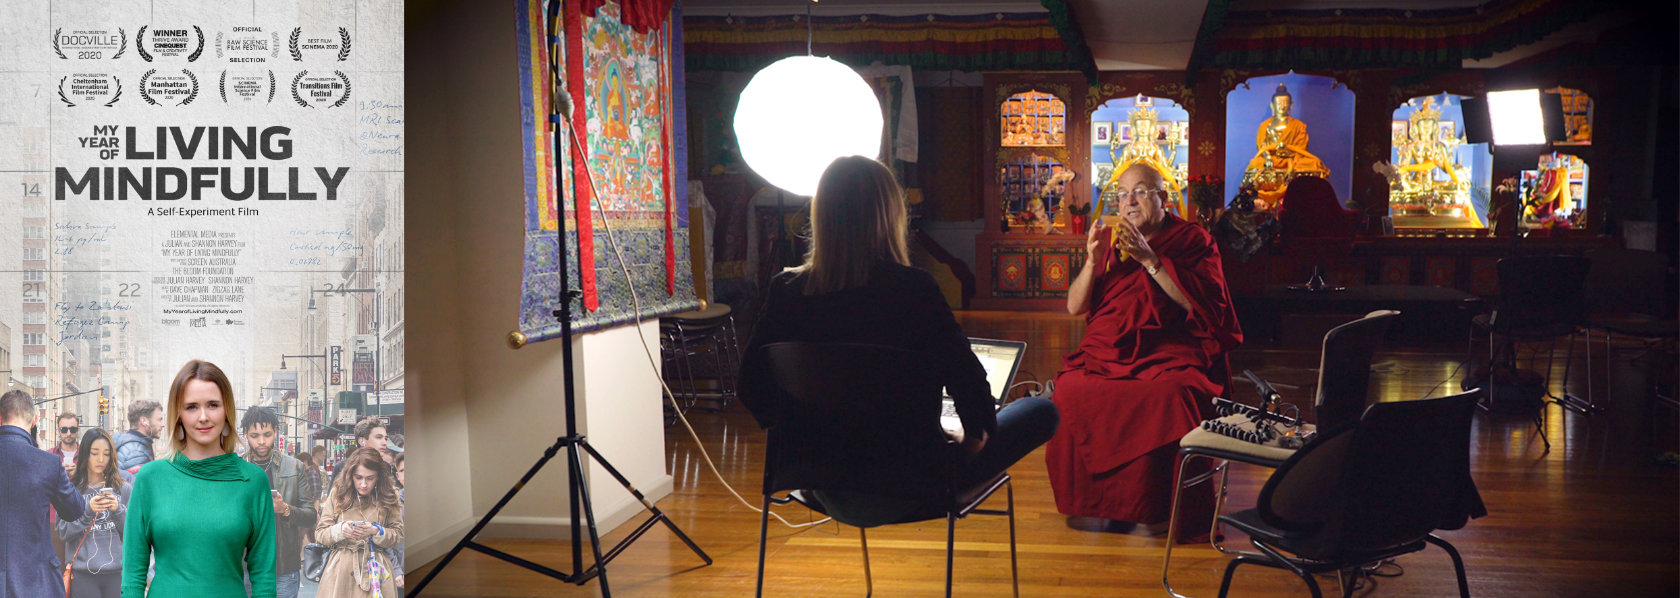 Matthieu Ricard doing an interview - My Year of Living Mindfully - THIS Buddhist Film Festival